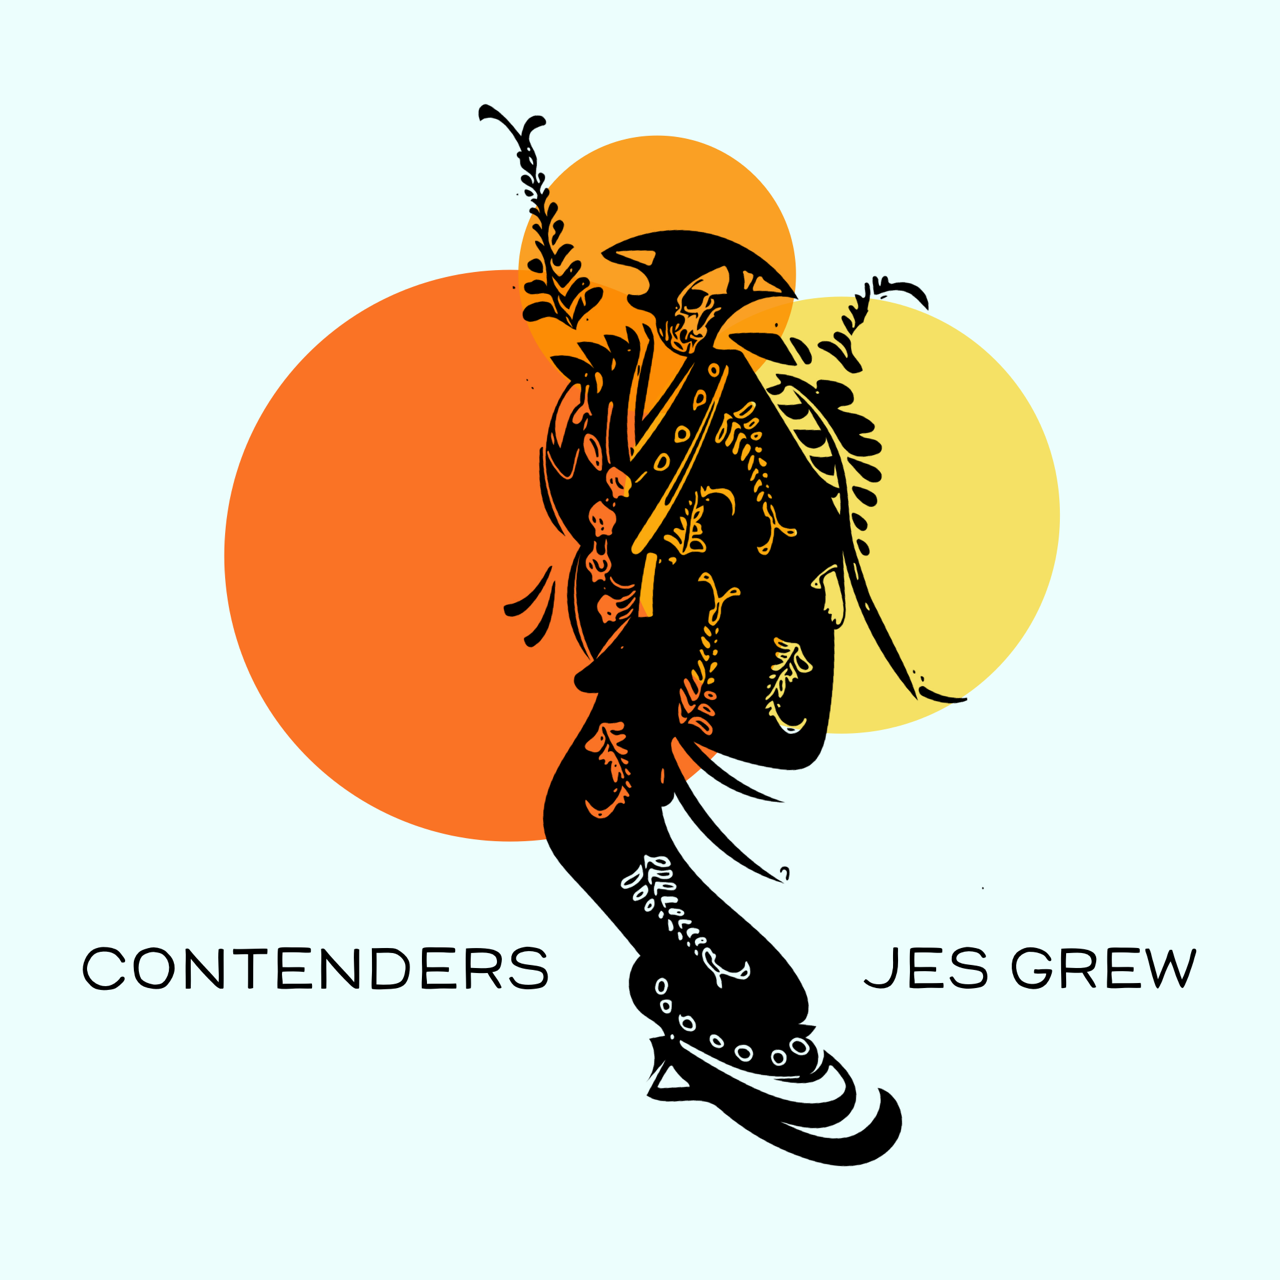 The Contenders - Jes Grew Flexi